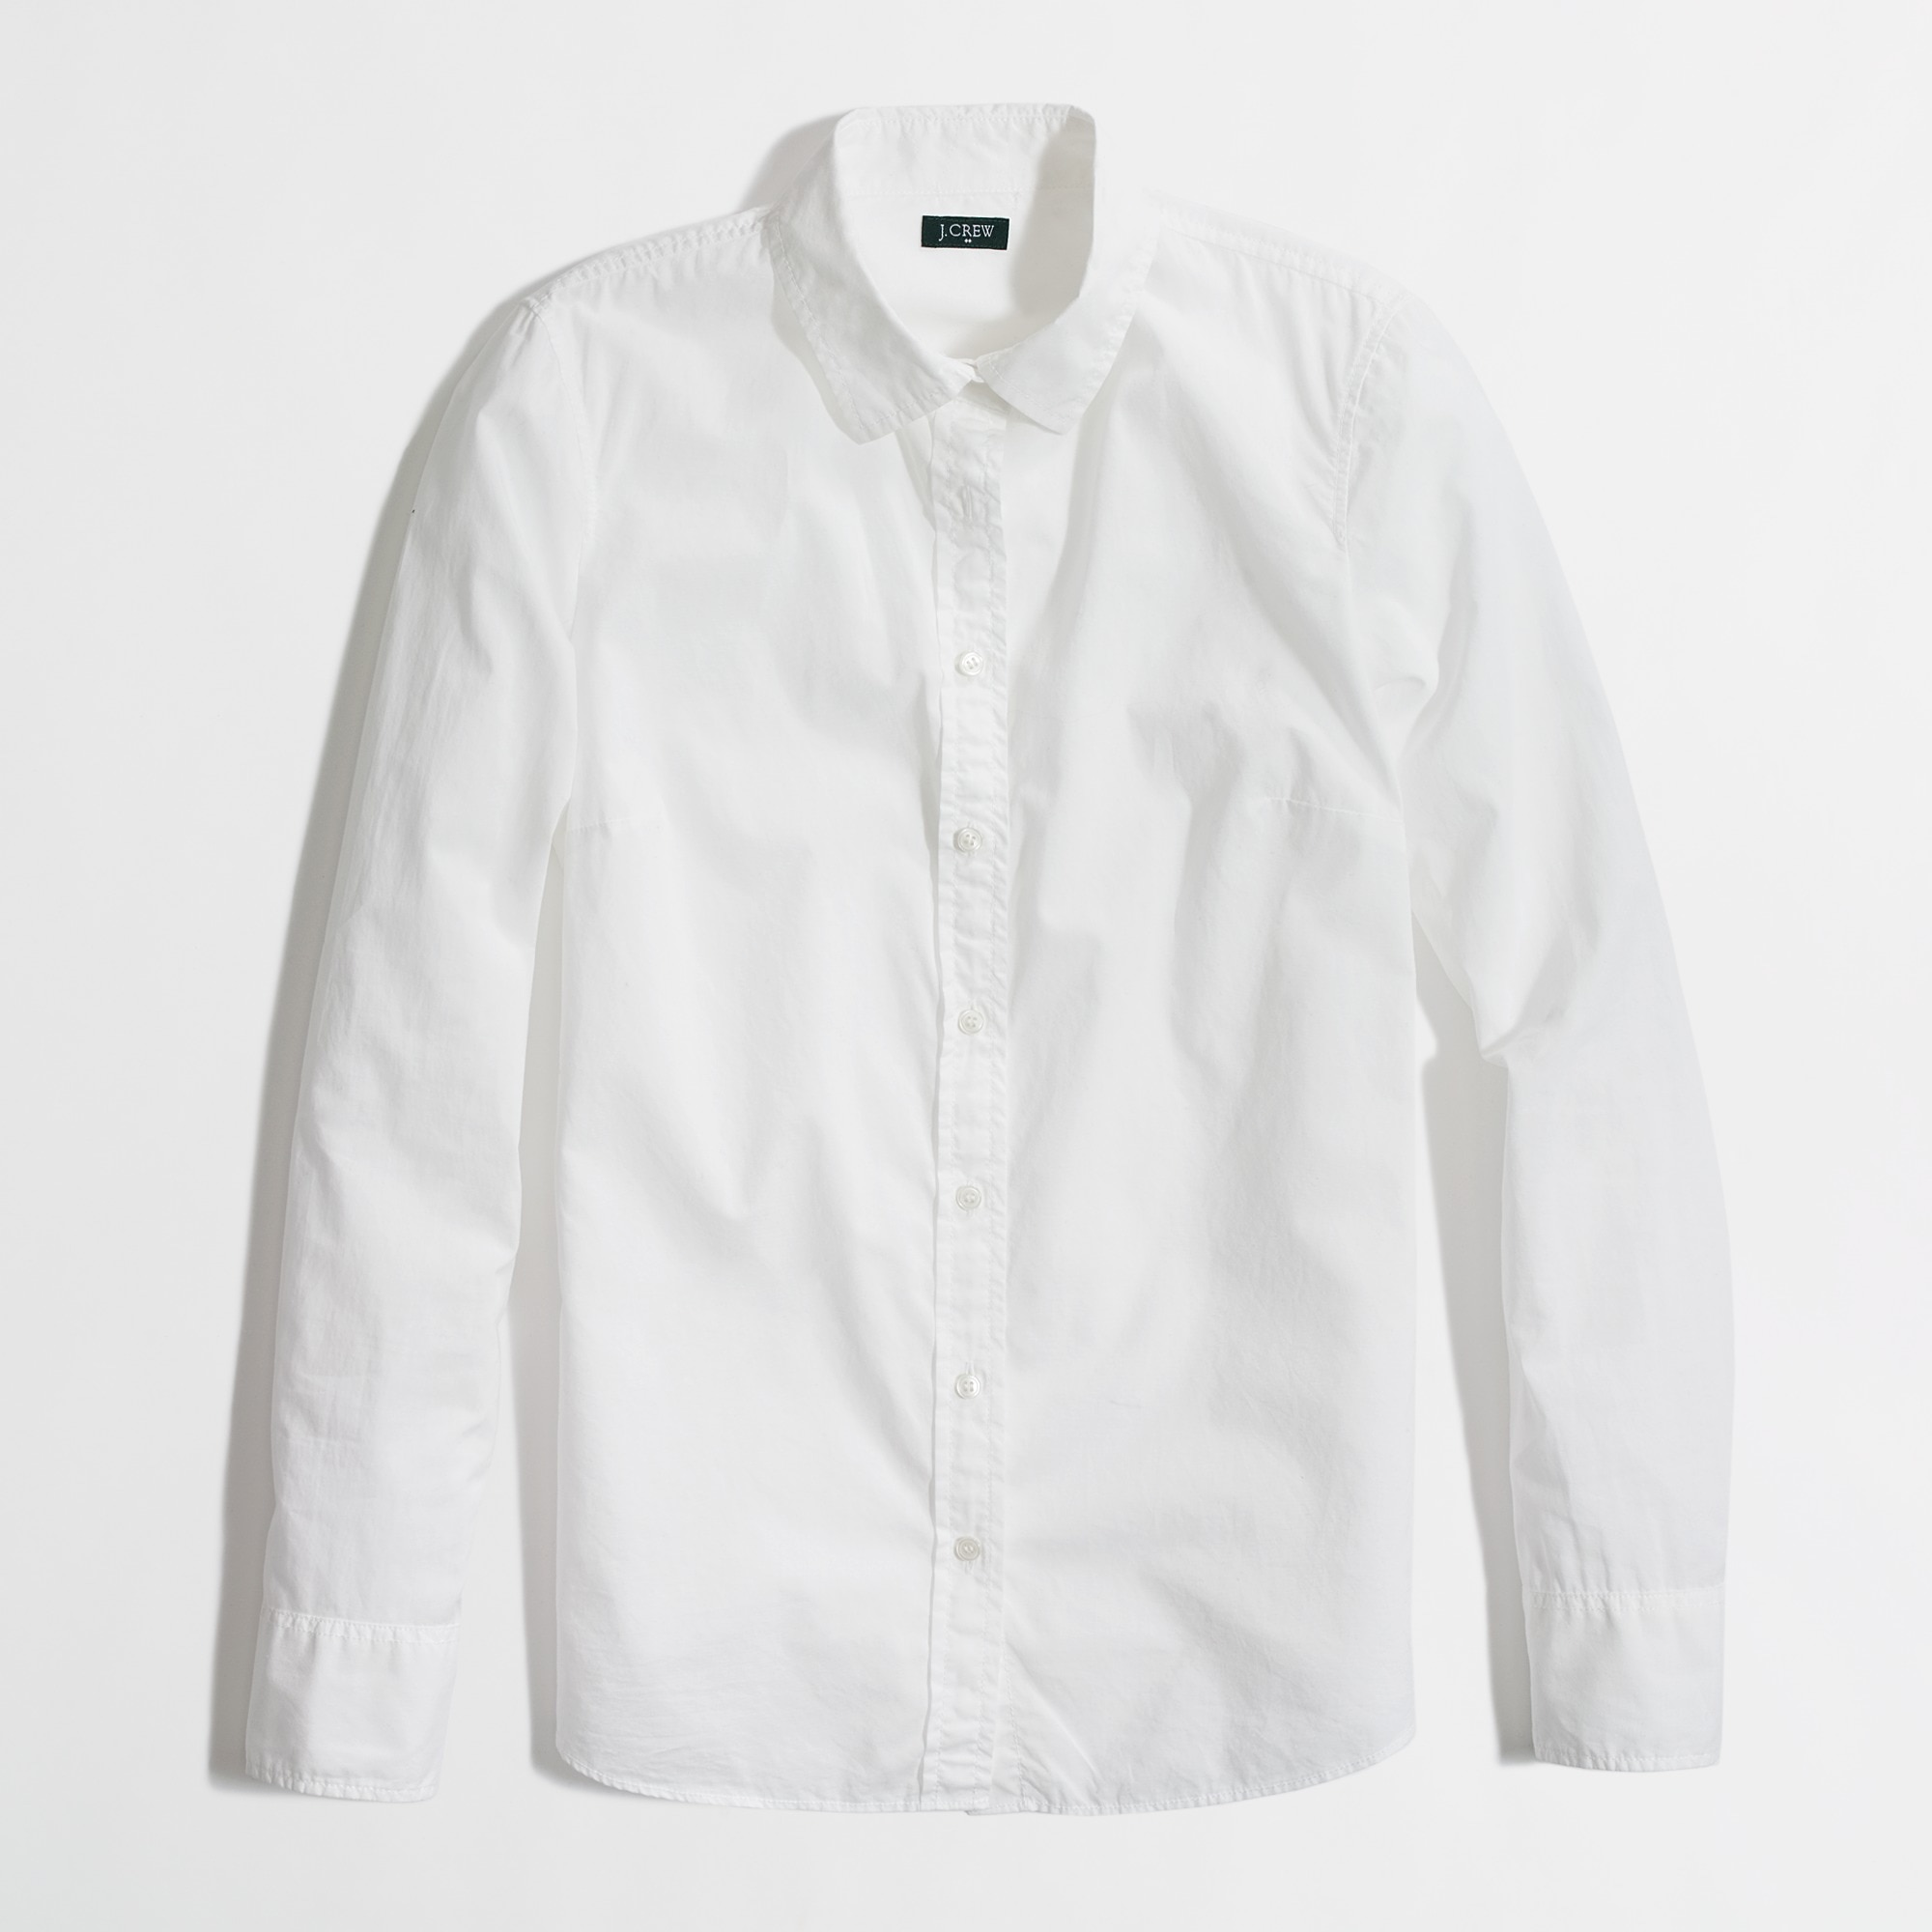 Image 1 for Factory white button-down shirt